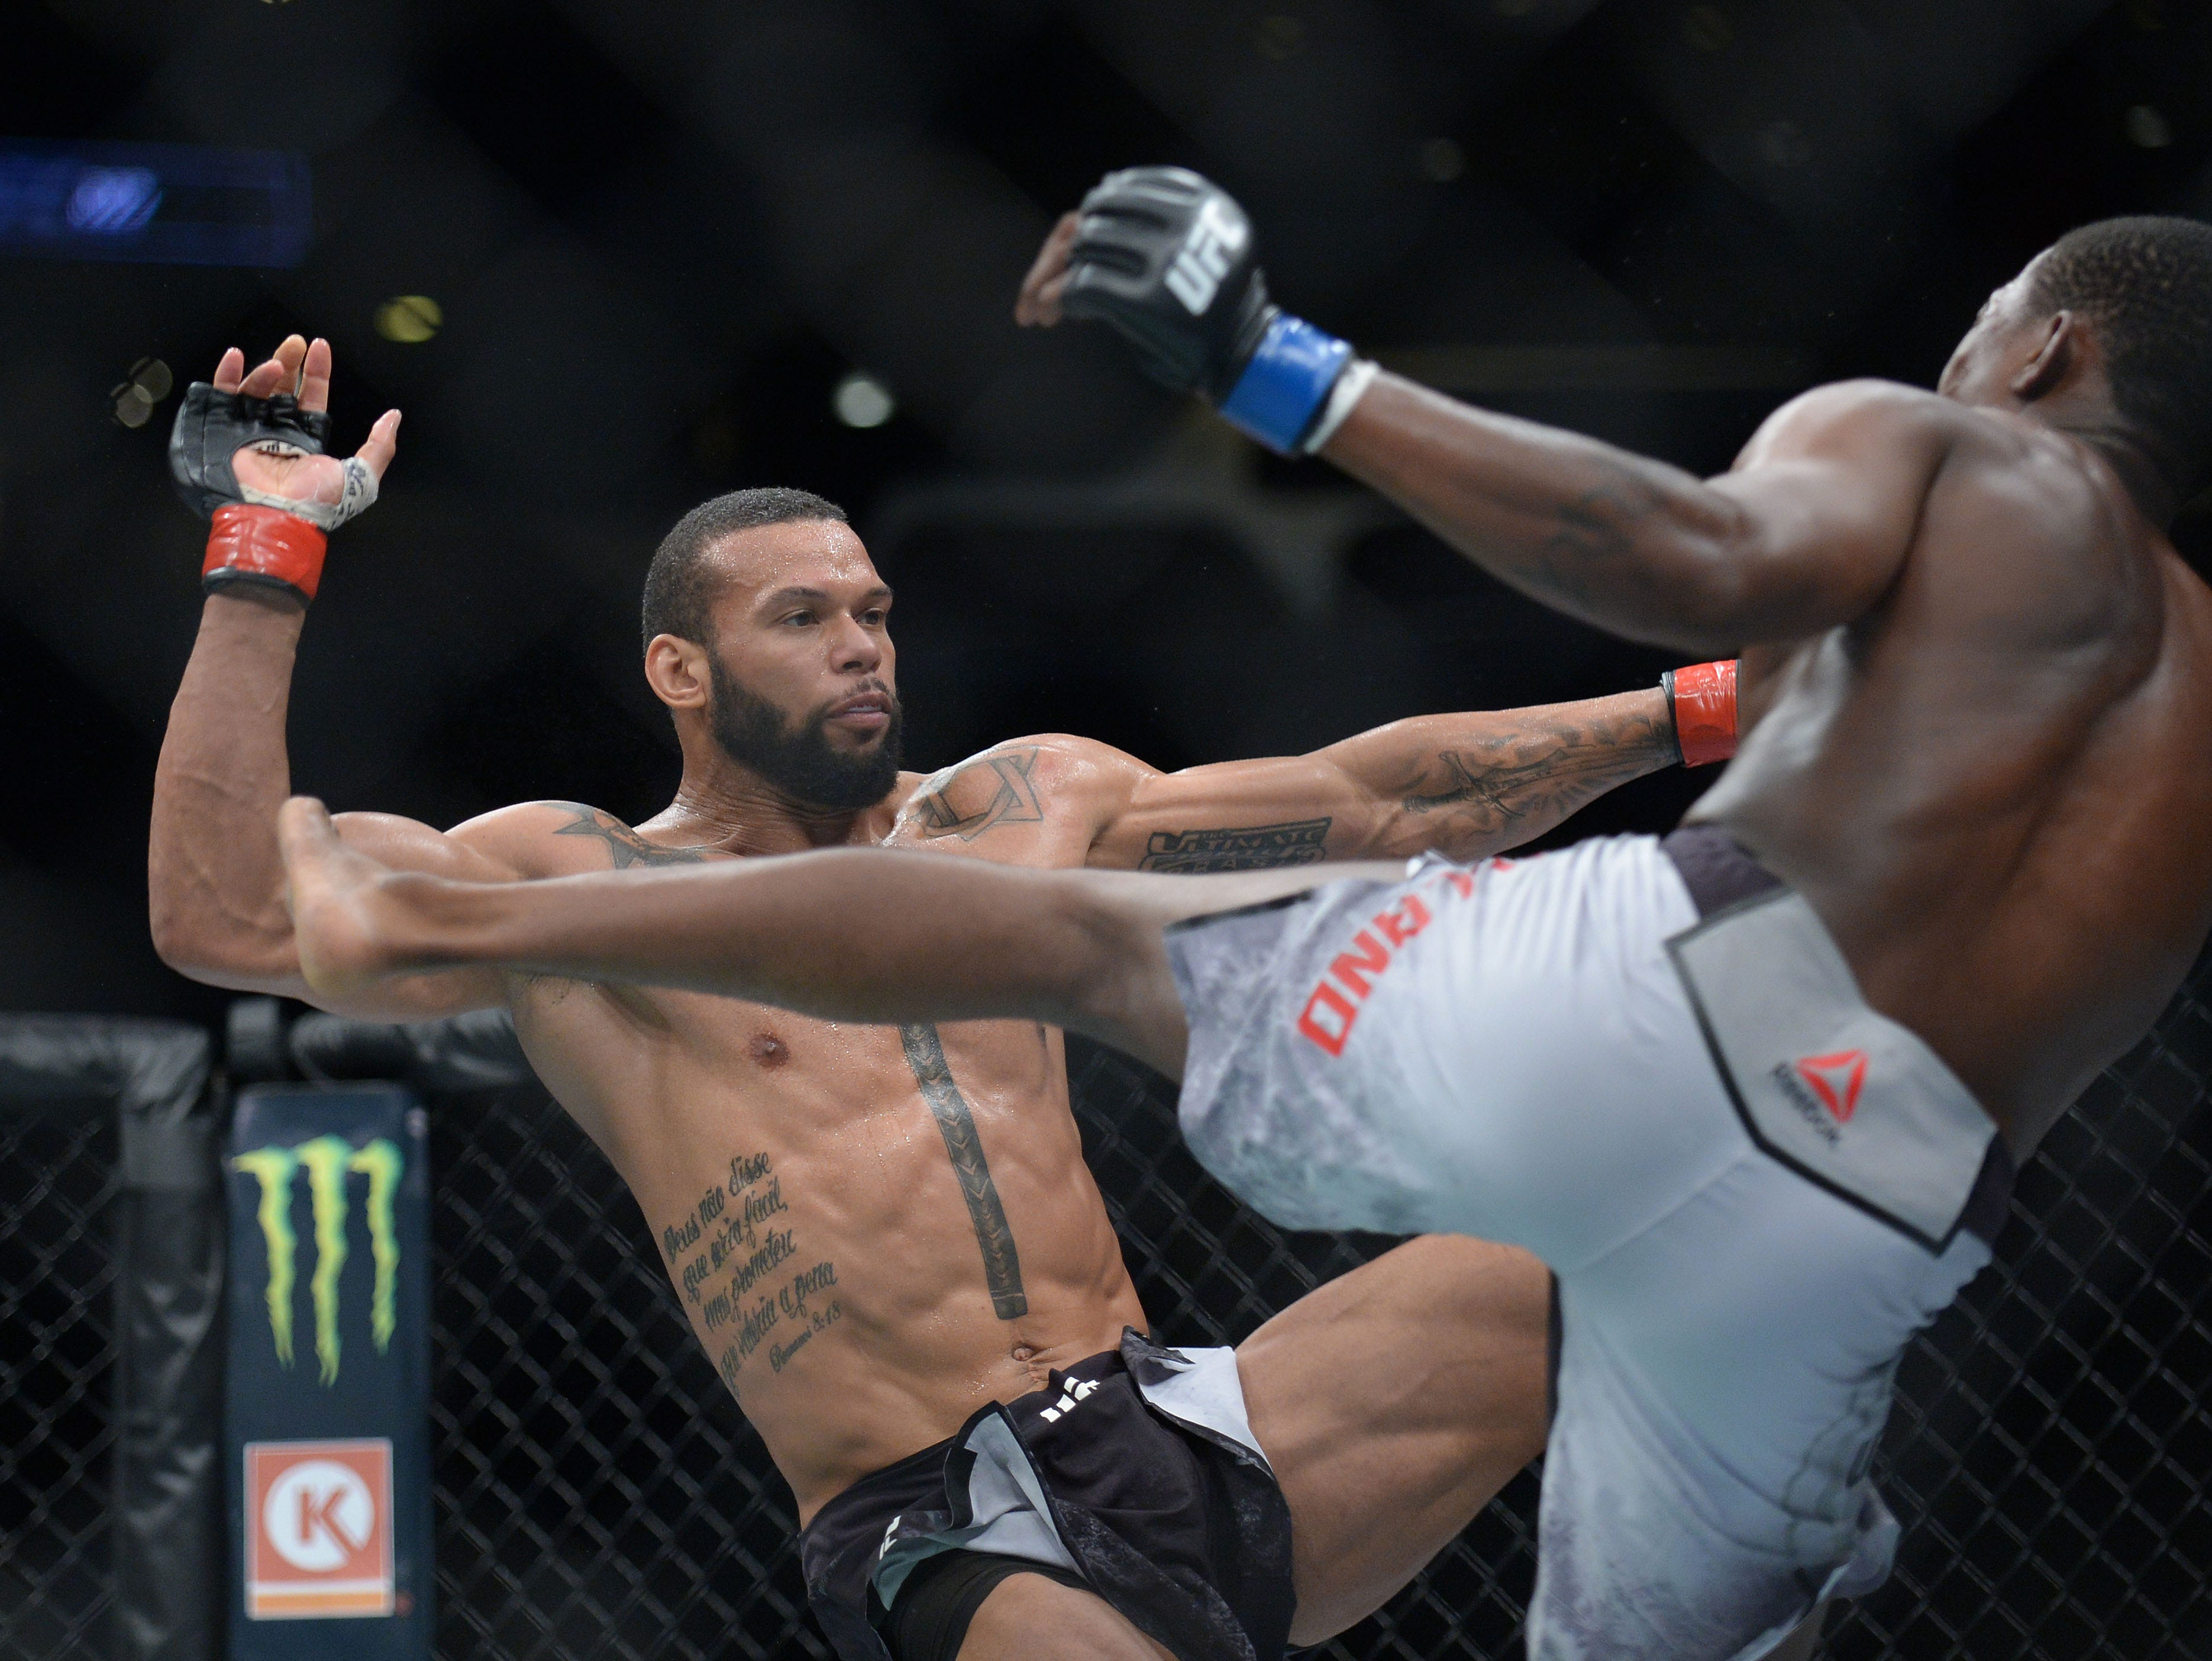 Kevin Holland moves in with a  kick against Thiago Santos during UFC 227 at Staples Center.